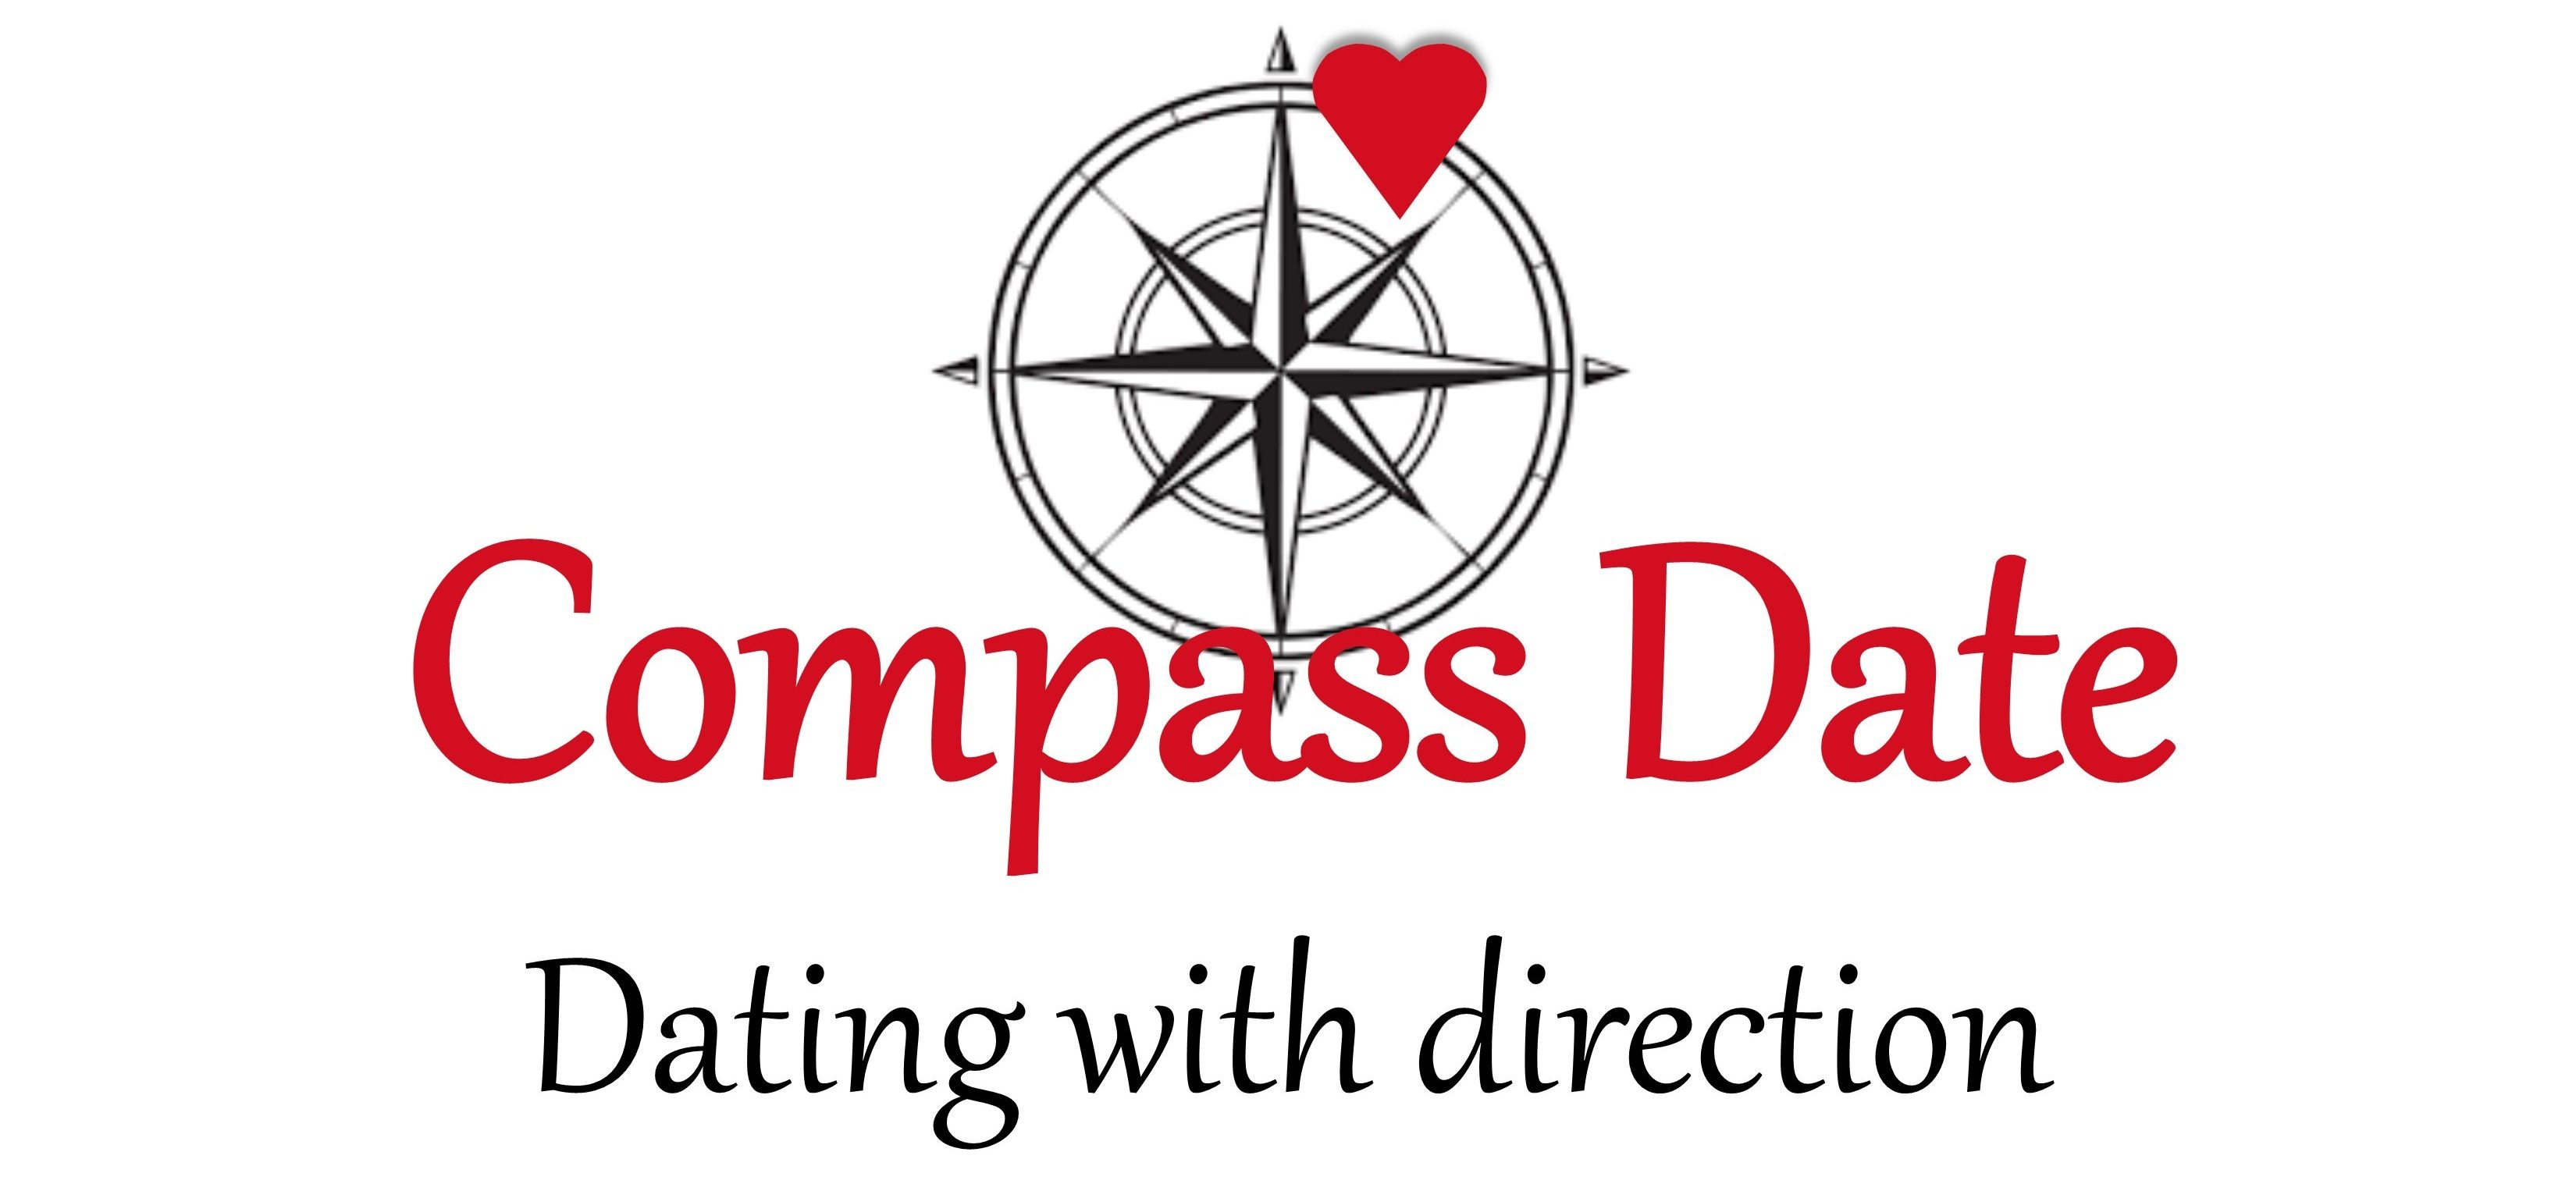 Compass Date